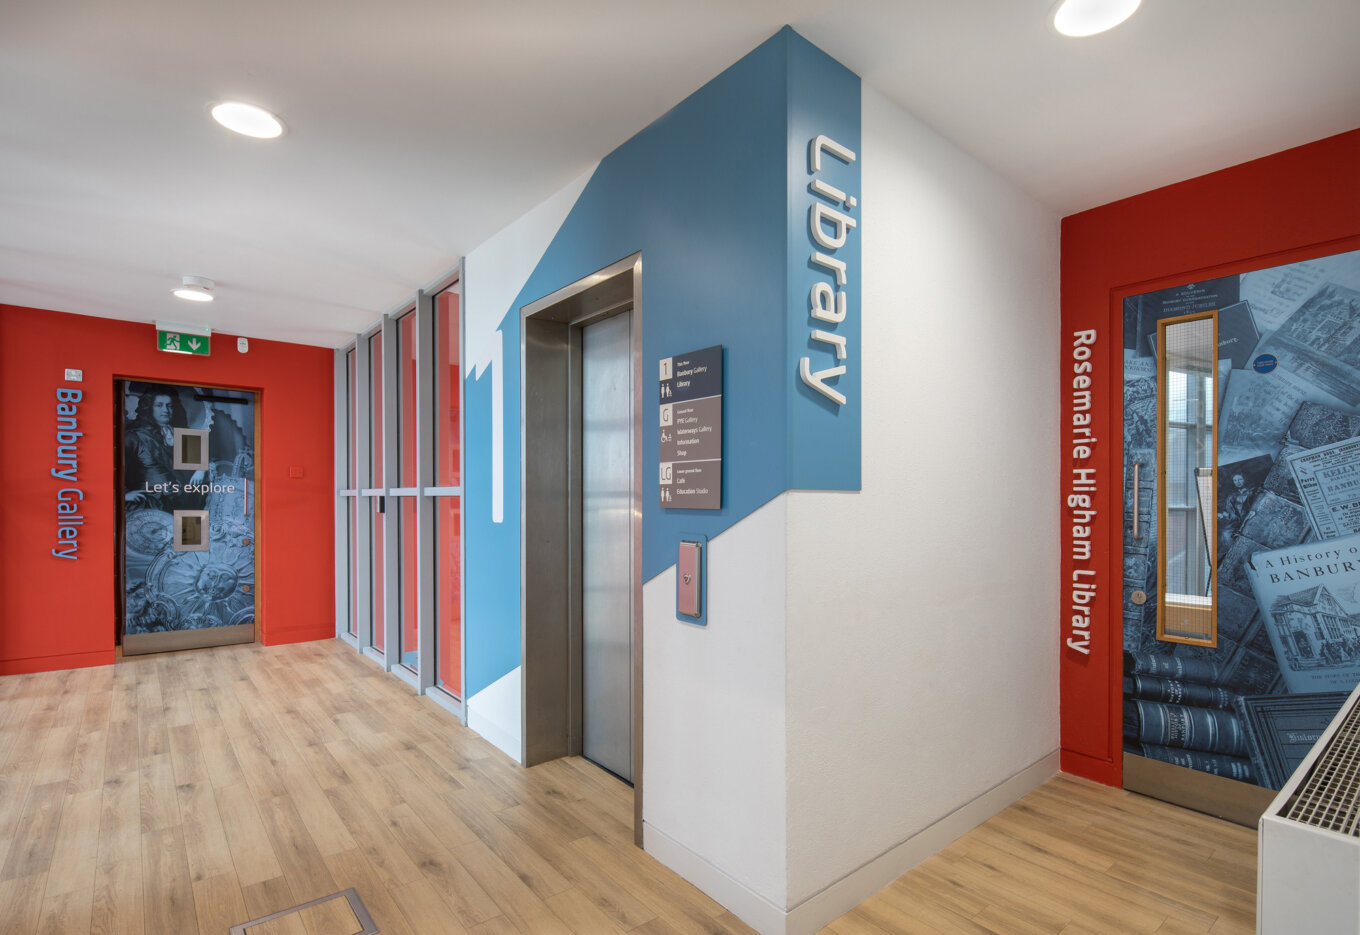 Museum Library gets Graphic Treatment